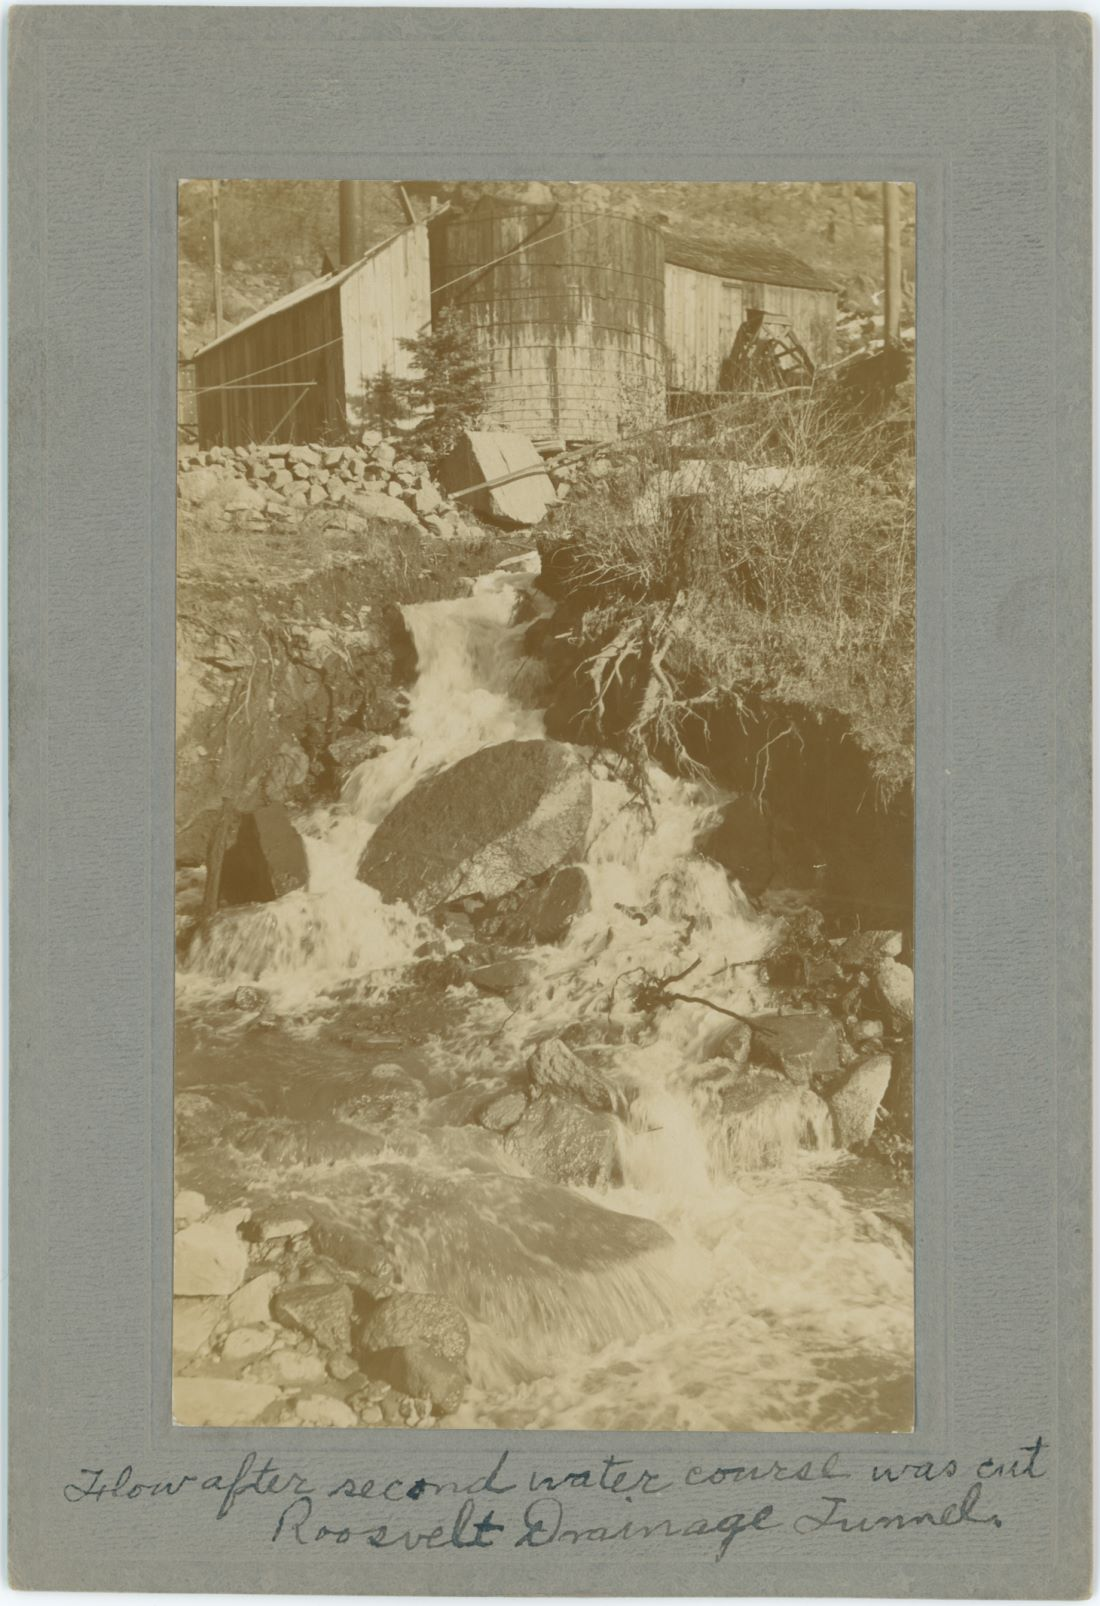 Photo is marked as showing the Flow of Water from the Roosevelt Drainage Tunnel after cutting the second water course, but as there is no date given it is hard to judge any date this might been taken, but I assume this view is from when they hit the second water course, possible around end of 1908.    In the upper part of this view is seen support structures at the portal area, when comparing this to the image showing the First Flow there is now a shed around the smokestack seen near left side of the before mention image and also seen poking up from the roof just left of the water tank near upper left. The water is coming from the tunnel, located behind the shed, which in turn is behind the water tank seen.